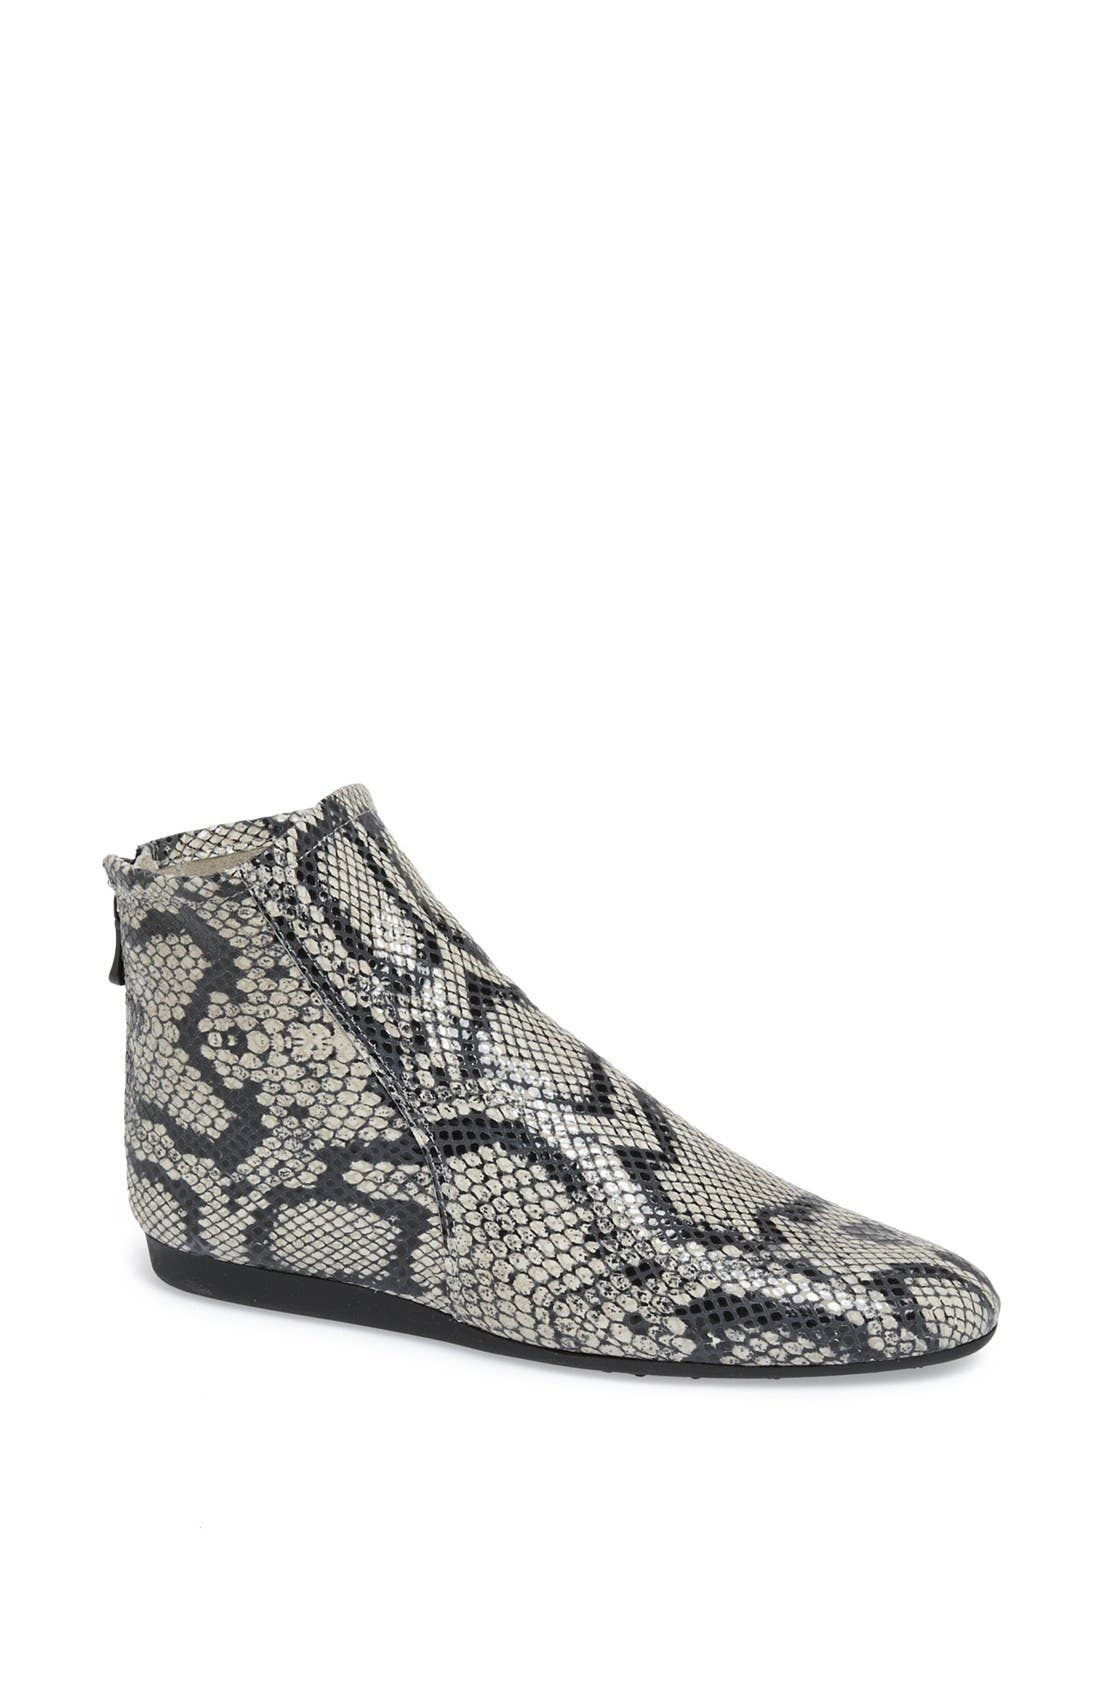 Alternate Image 1 Selected - Arche 'Lilou' Ankle Boot